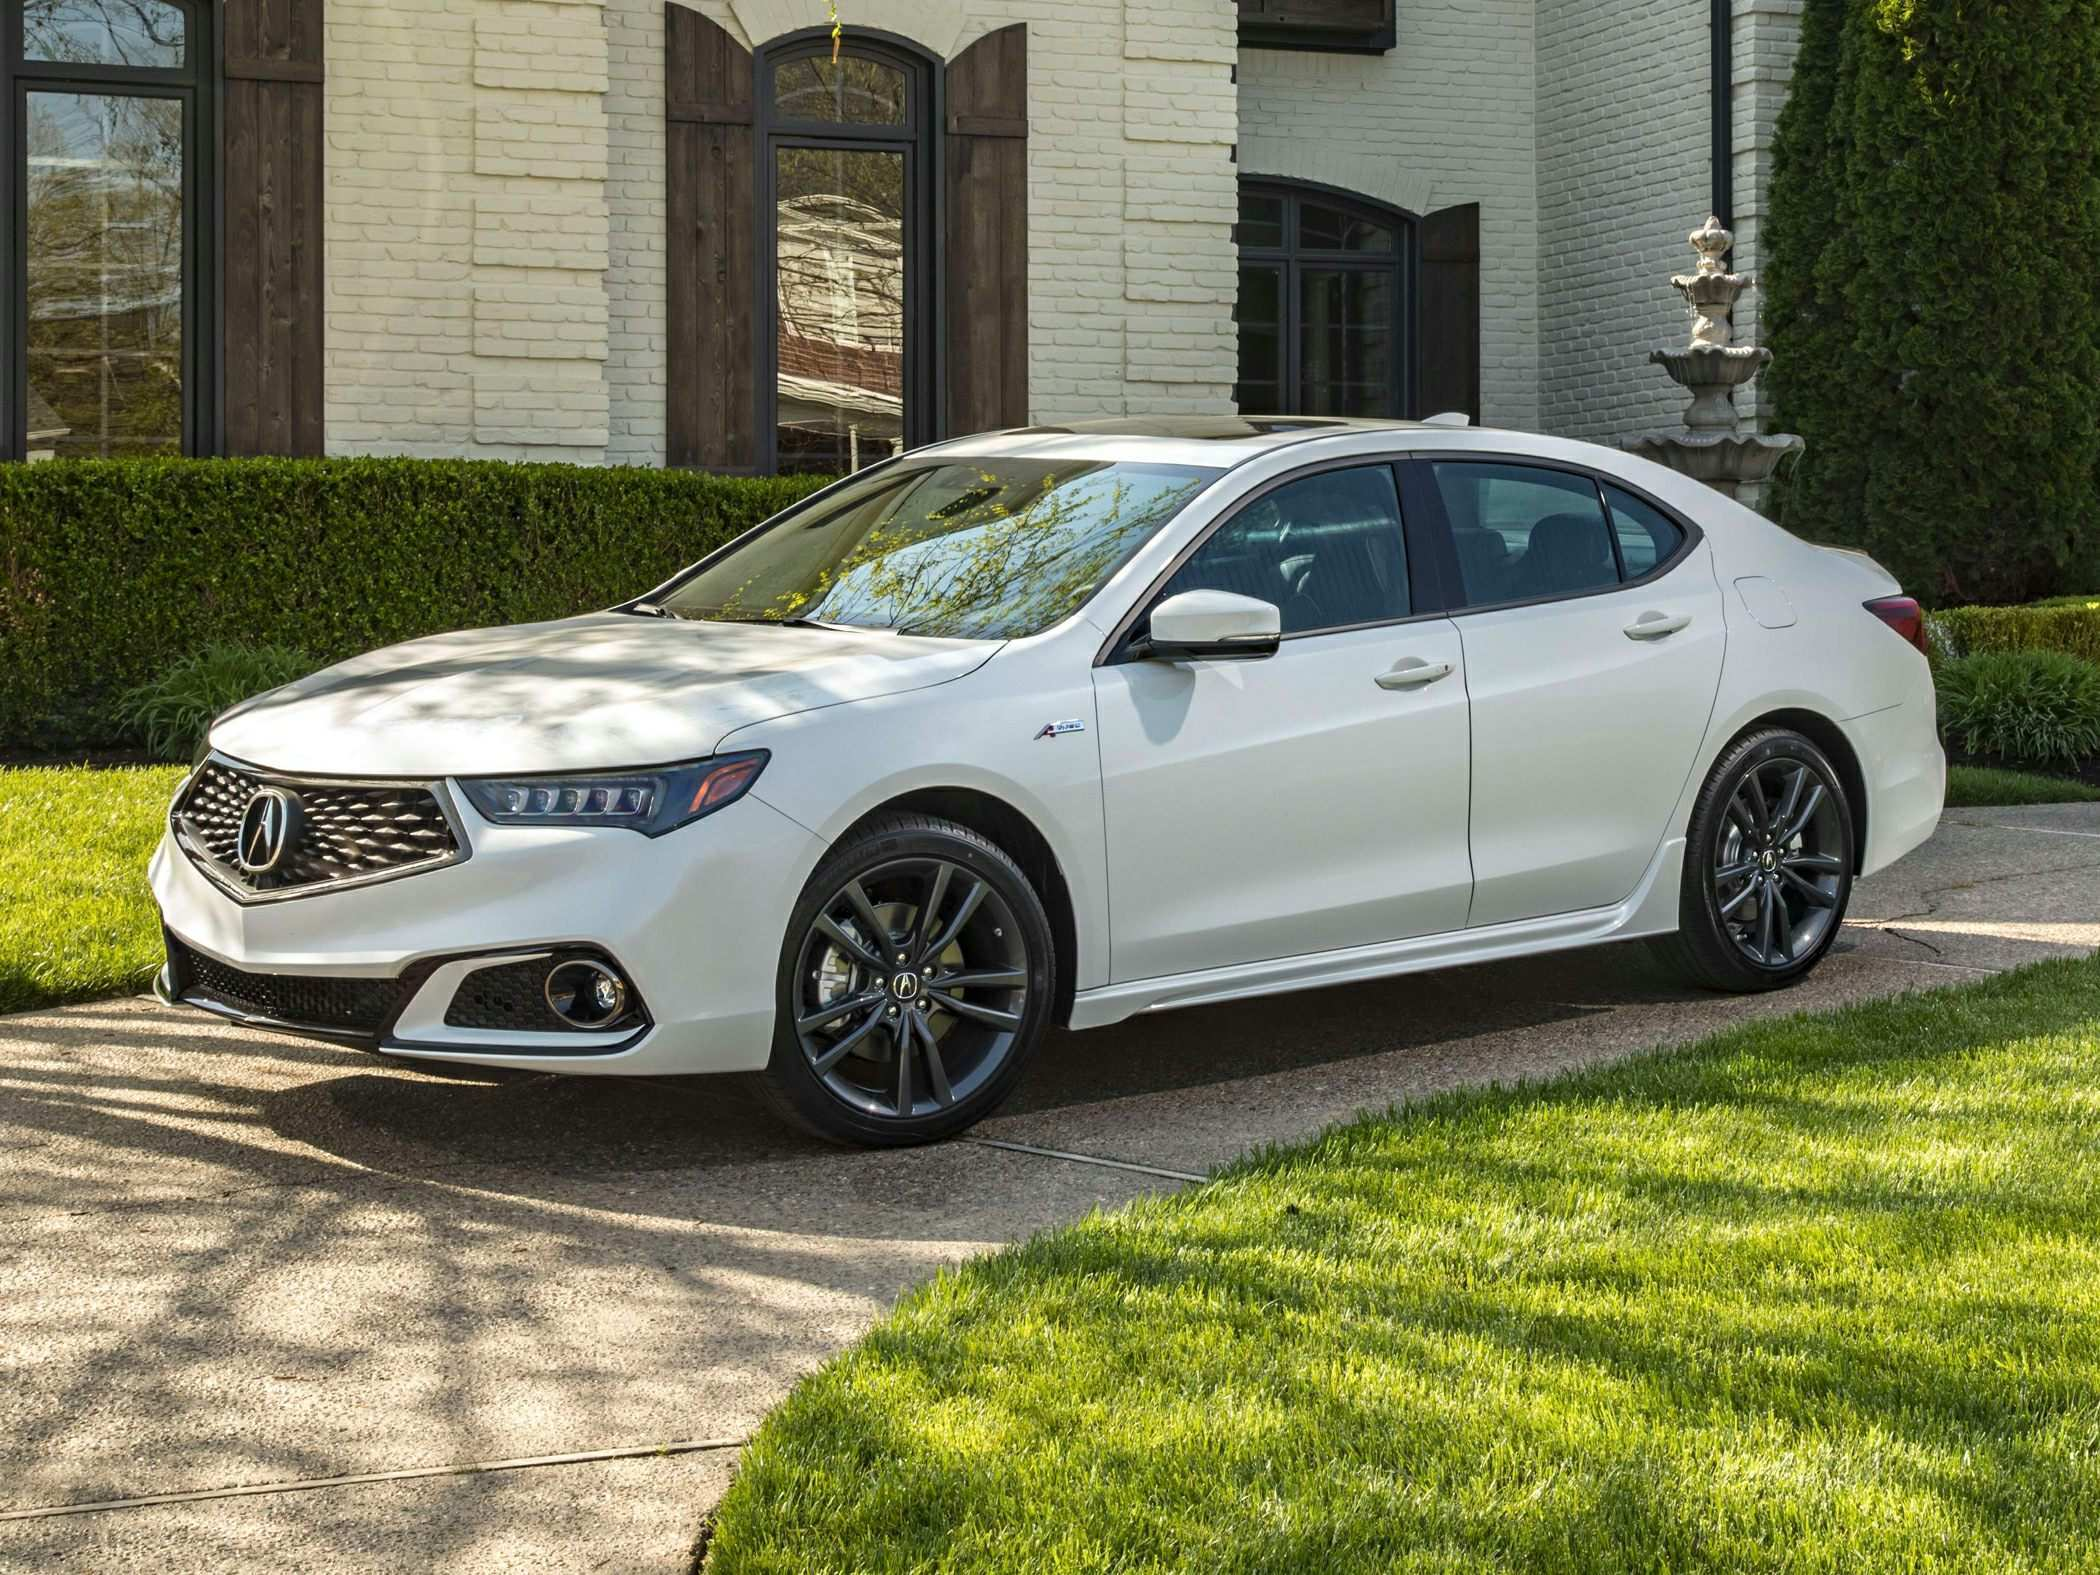 79 Concept of Best Acura Tlx 2019 Youtube Release Date Images by Best Acura Tlx 2019 Youtube Release Date